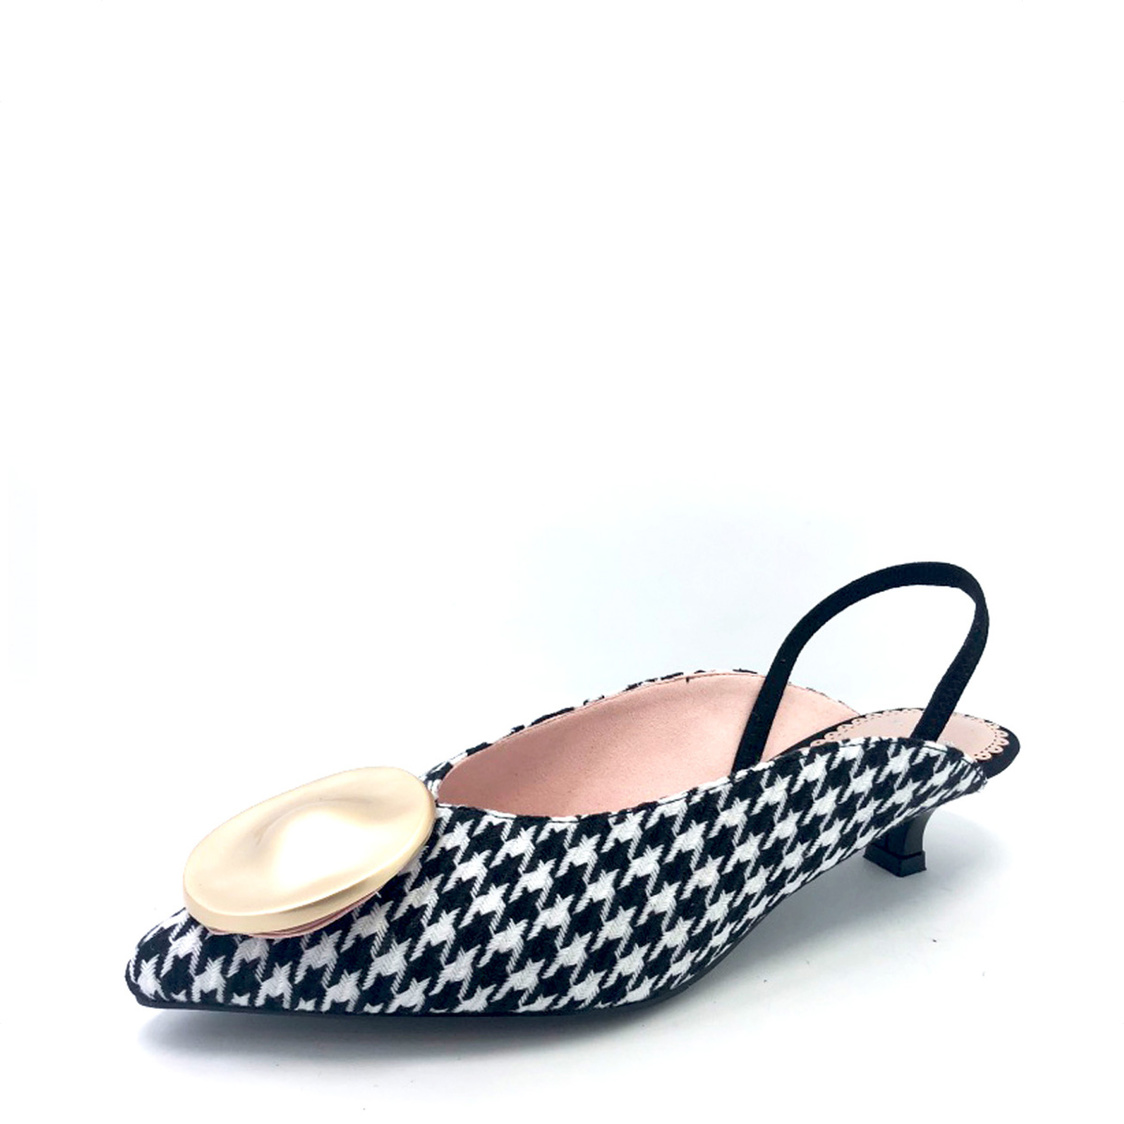 Slingback Courtshoes with Brooch WhiteBlack Plaids